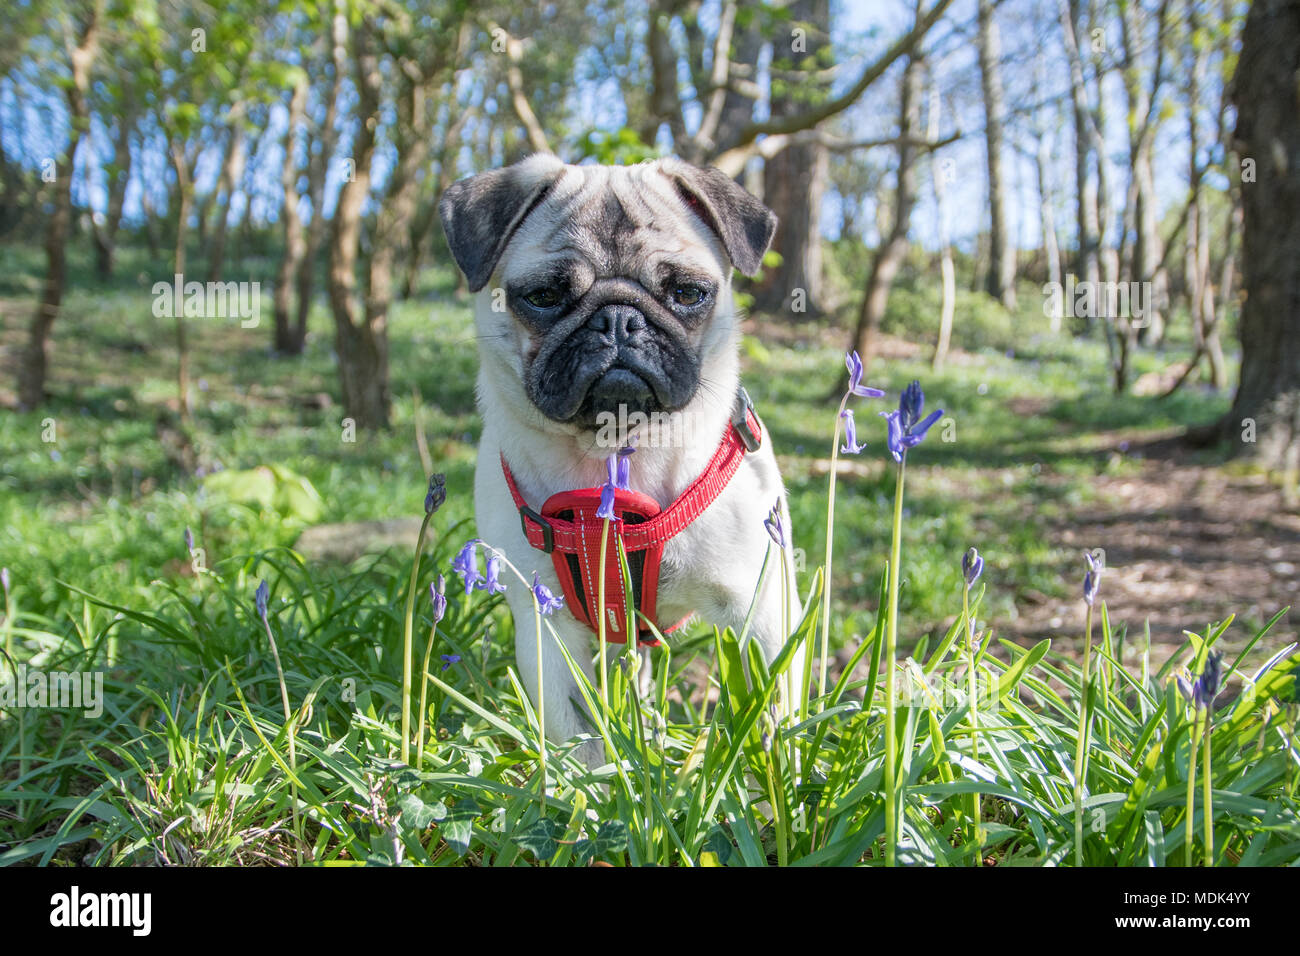 Newlyn, Cornwall, UK. 20th April 2108. UK Weather. Titan the pug out in the Bluebells wood at Newlyn, which have sprung into bloom in the warm weather over the last few days. Credit: Simon Maycock/Alamy Live News - Stock Image